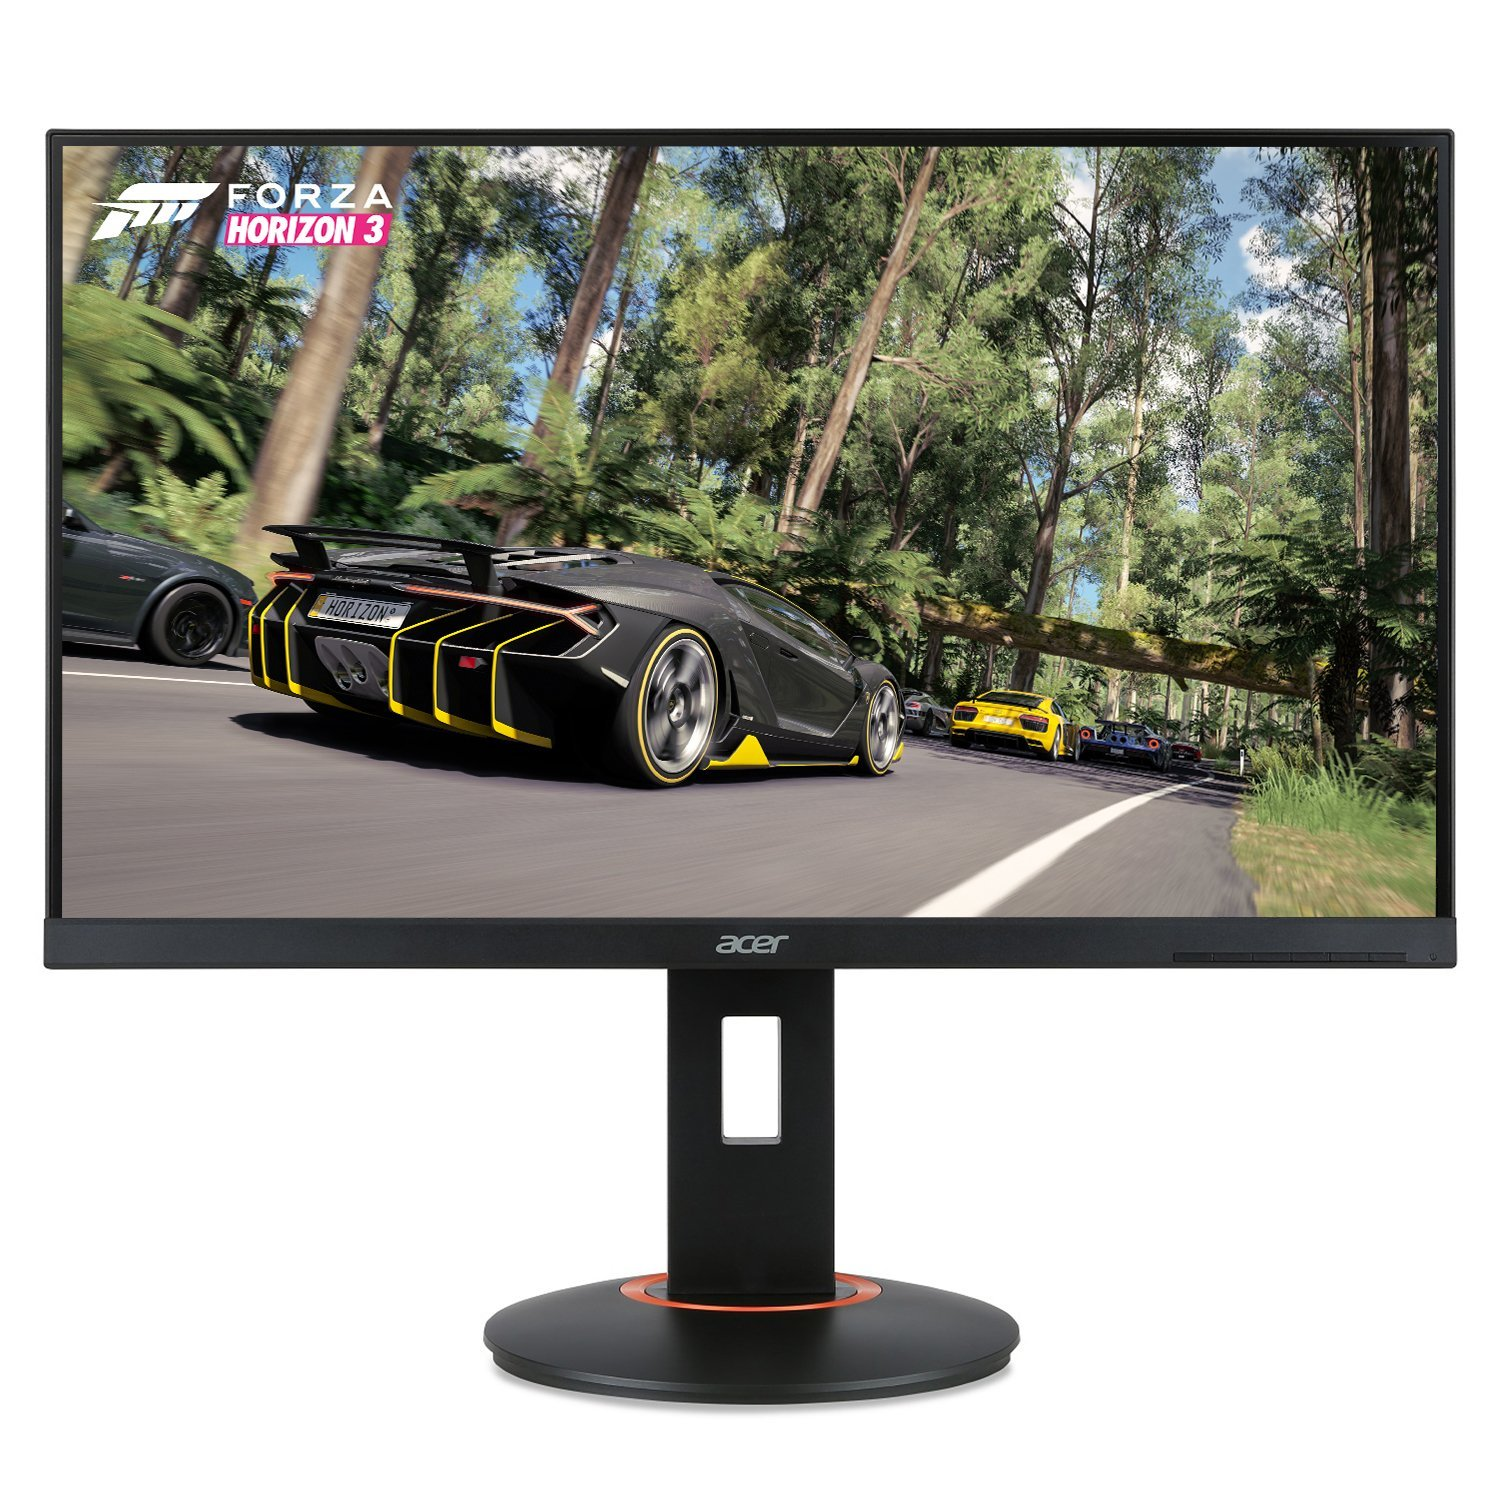 Acer XFA240 bmjdpr 24' Gaming G-SYNC Compatible Monitor 1920 x 1080, 144hz Refresh Rate, 1ms Response Time with Height, Pivot, Swivel & Tilt